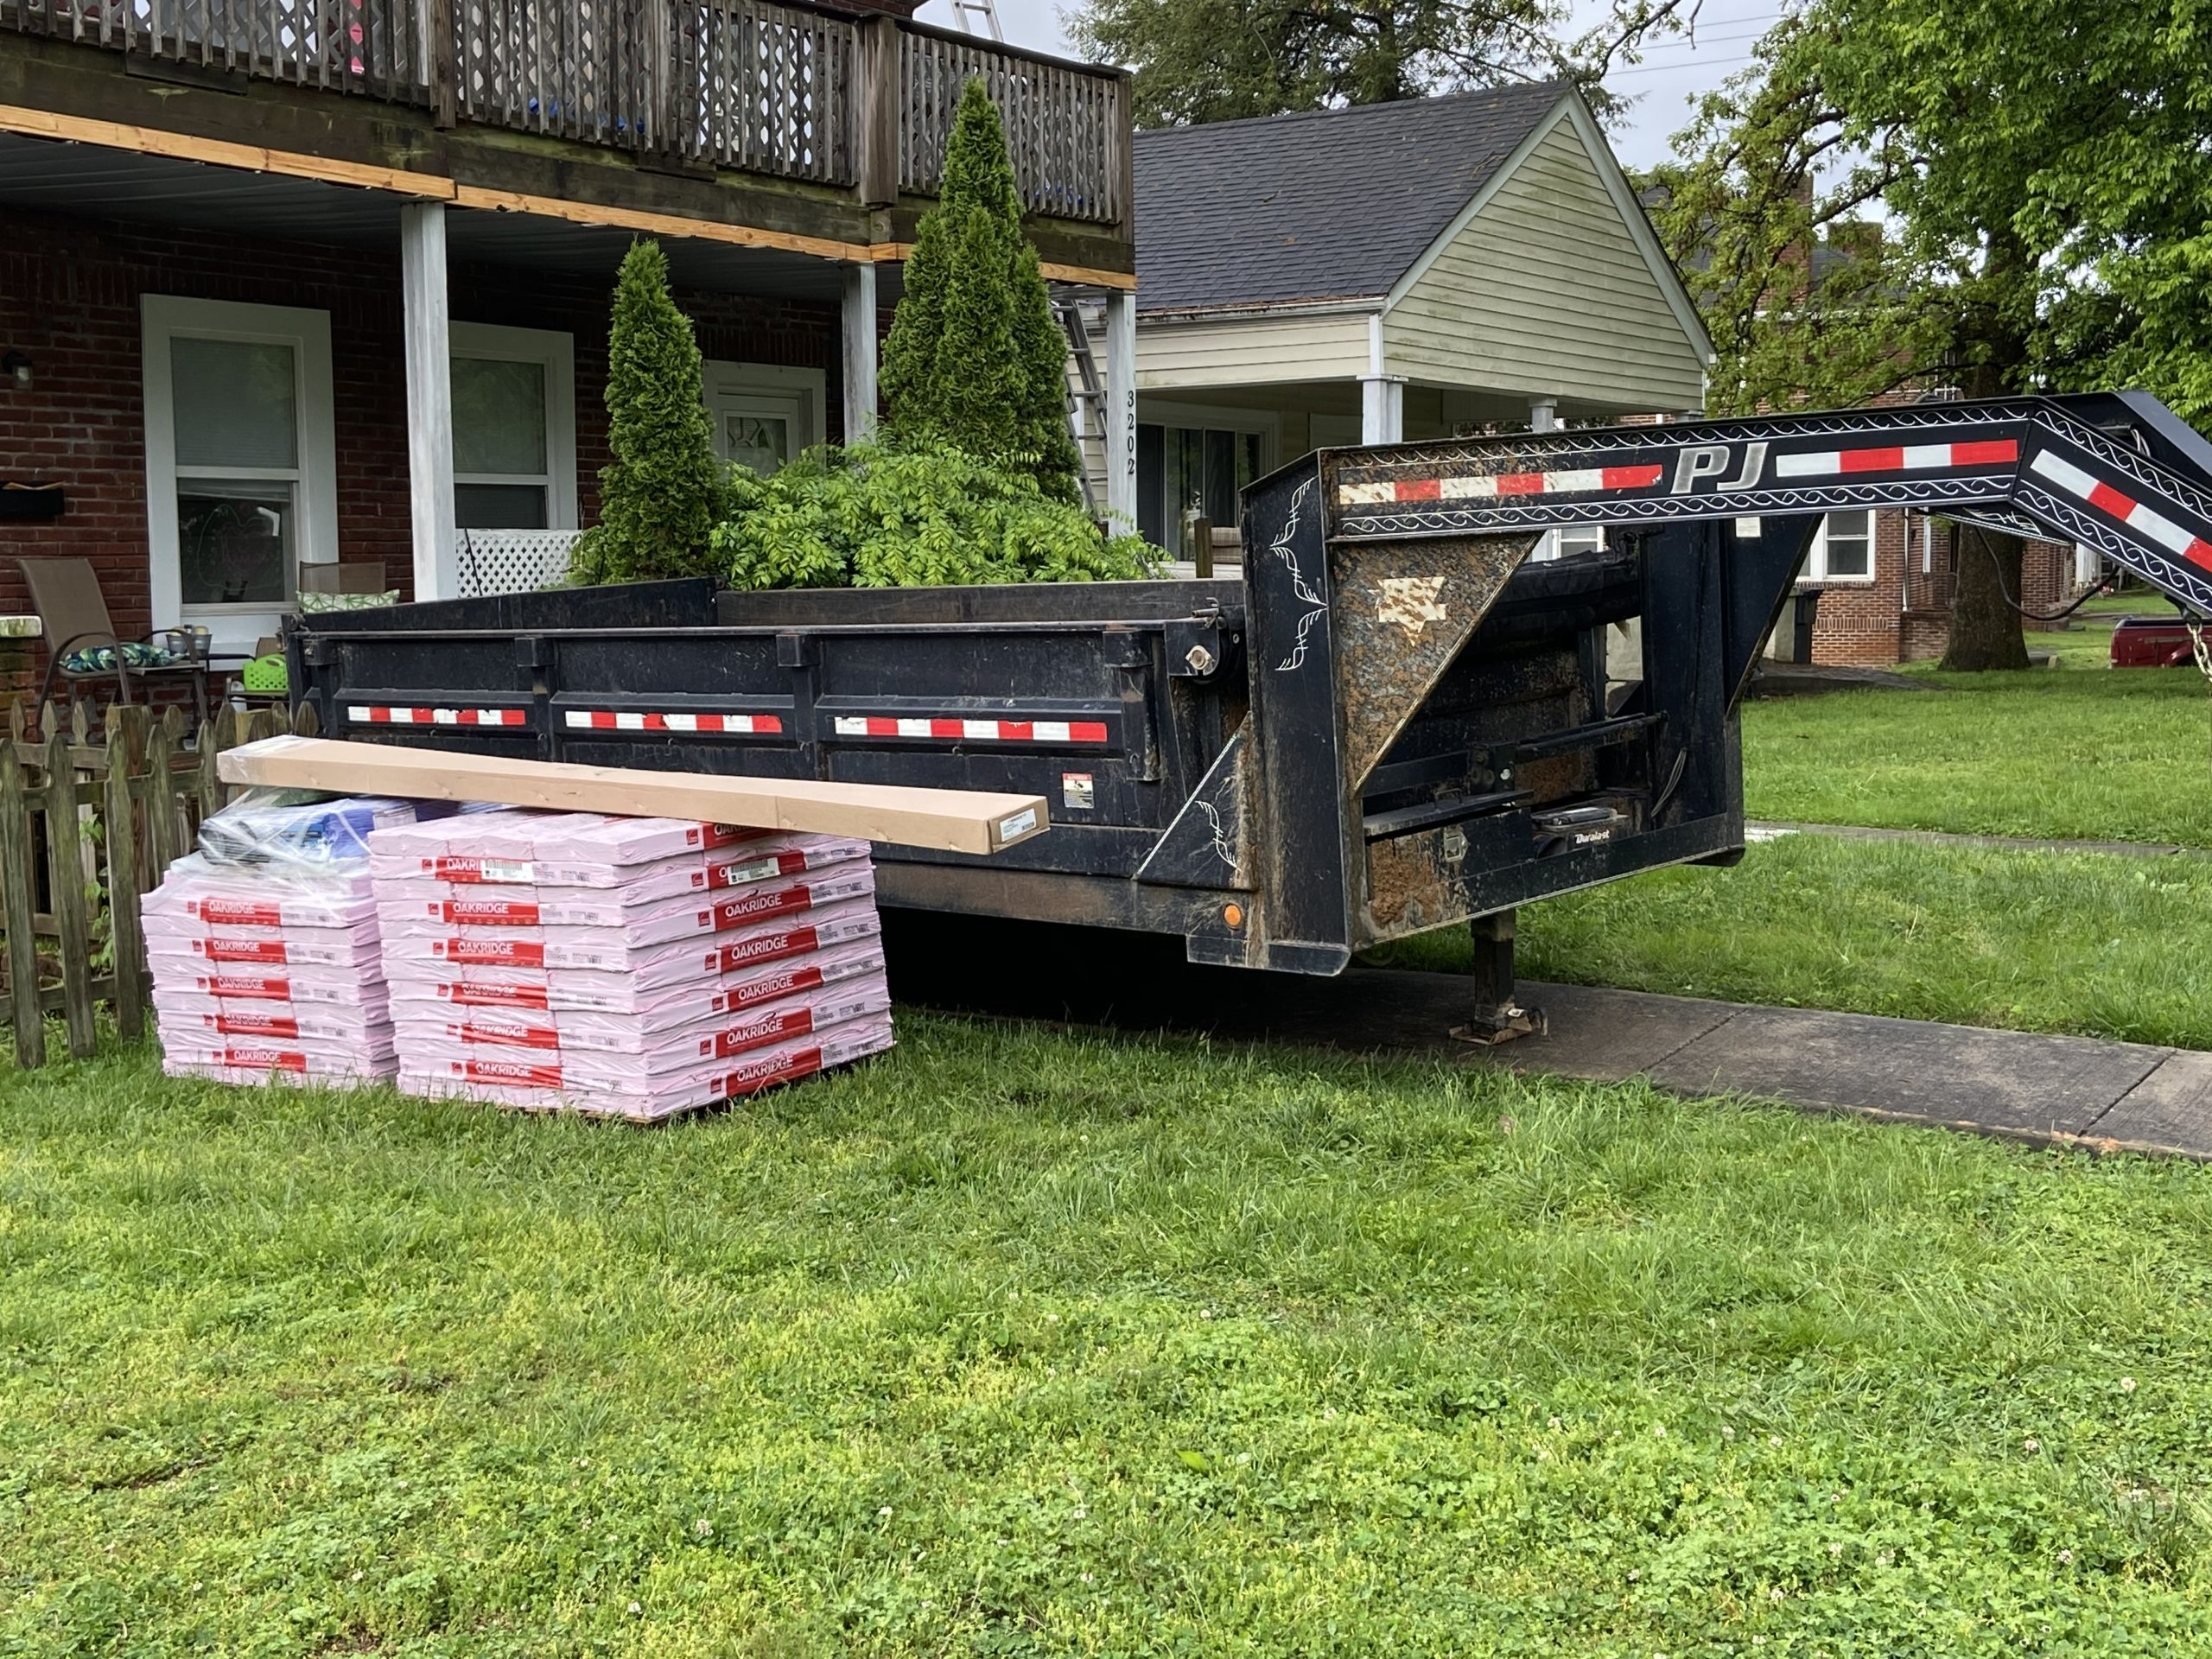 This is the view of the shingle bundles and dump trailer delivered to the home prior to roofing.